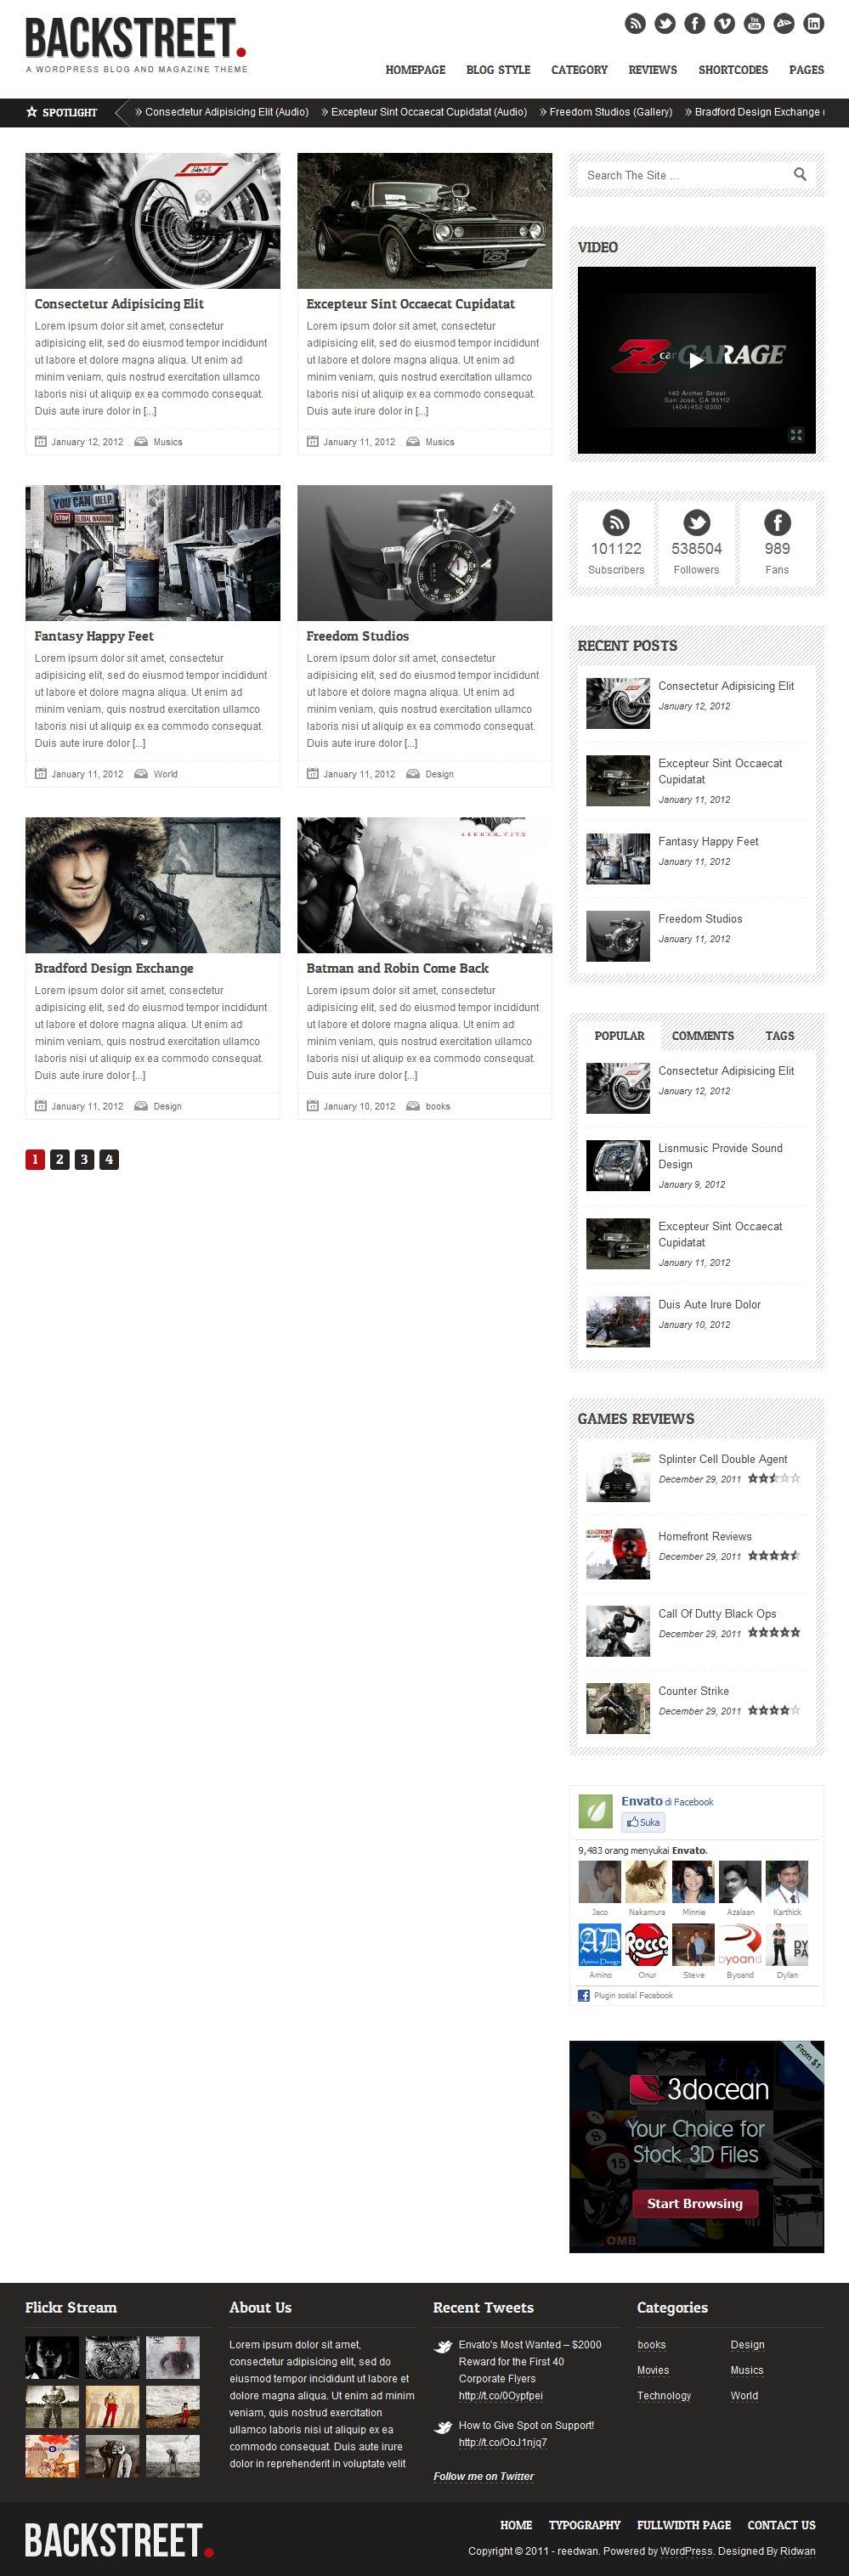 Backstreet - Blog & Magazine Theme